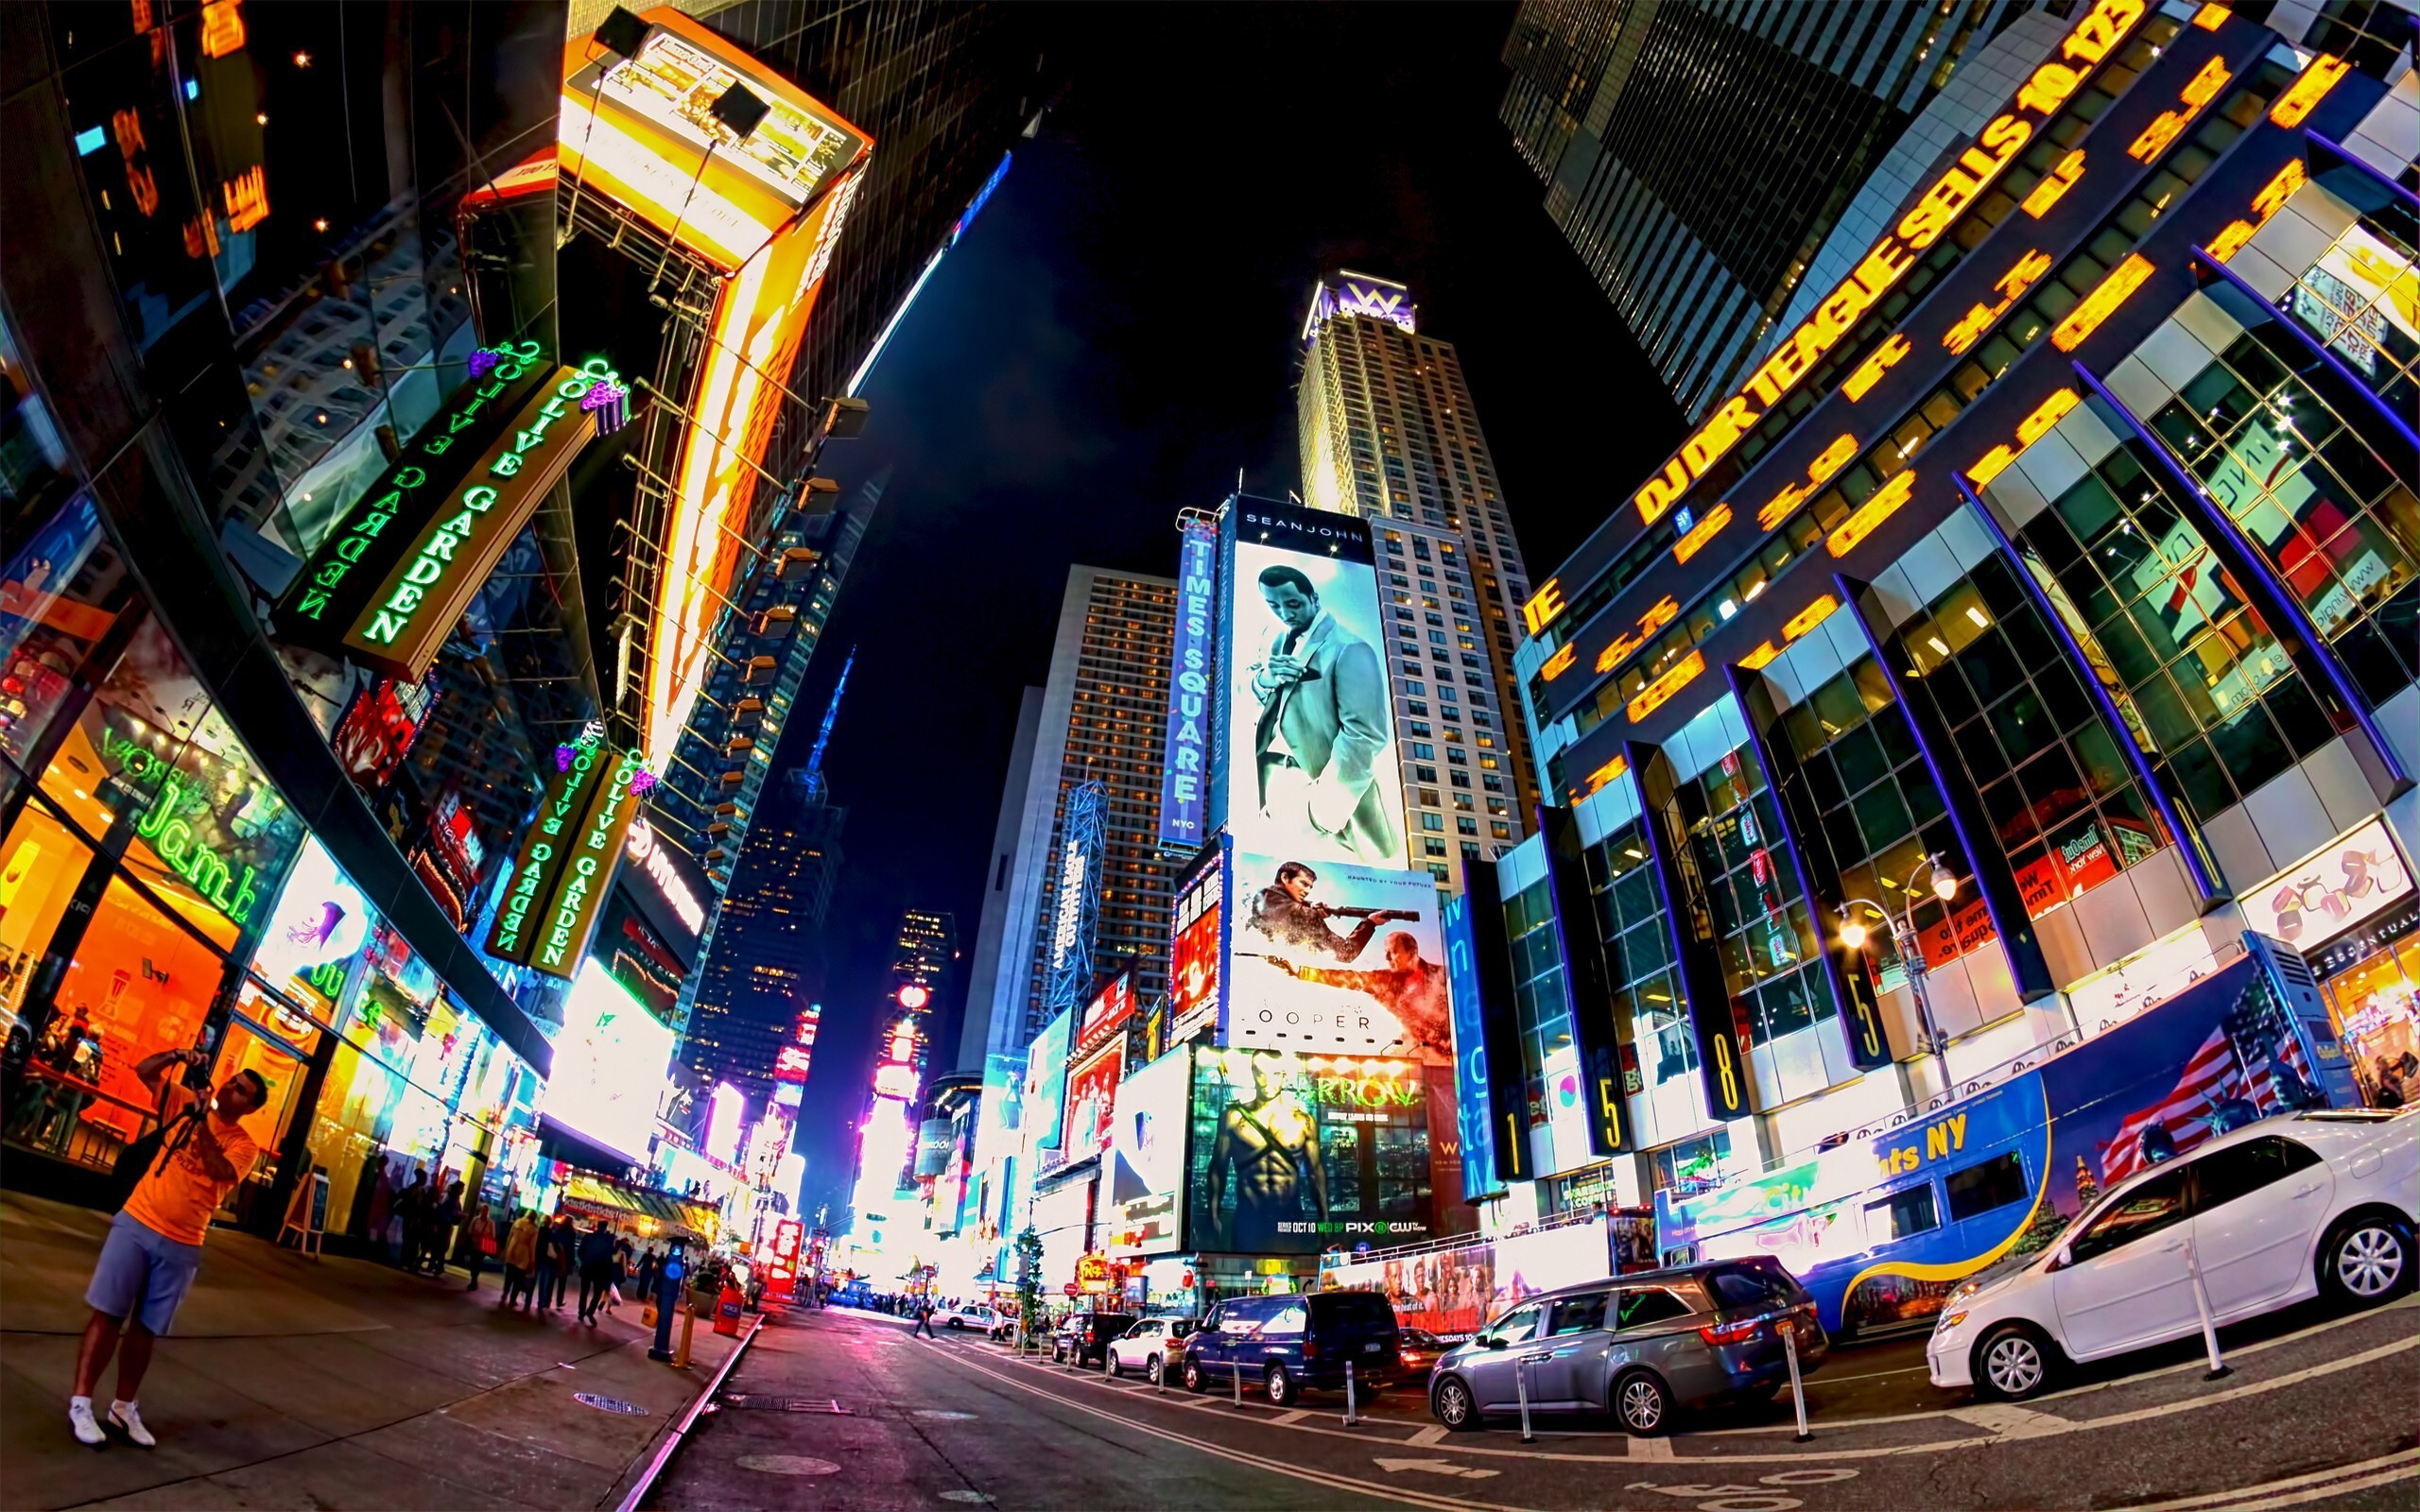 Times Square New York City United States Hd Wallpaper Hd Wallpapers